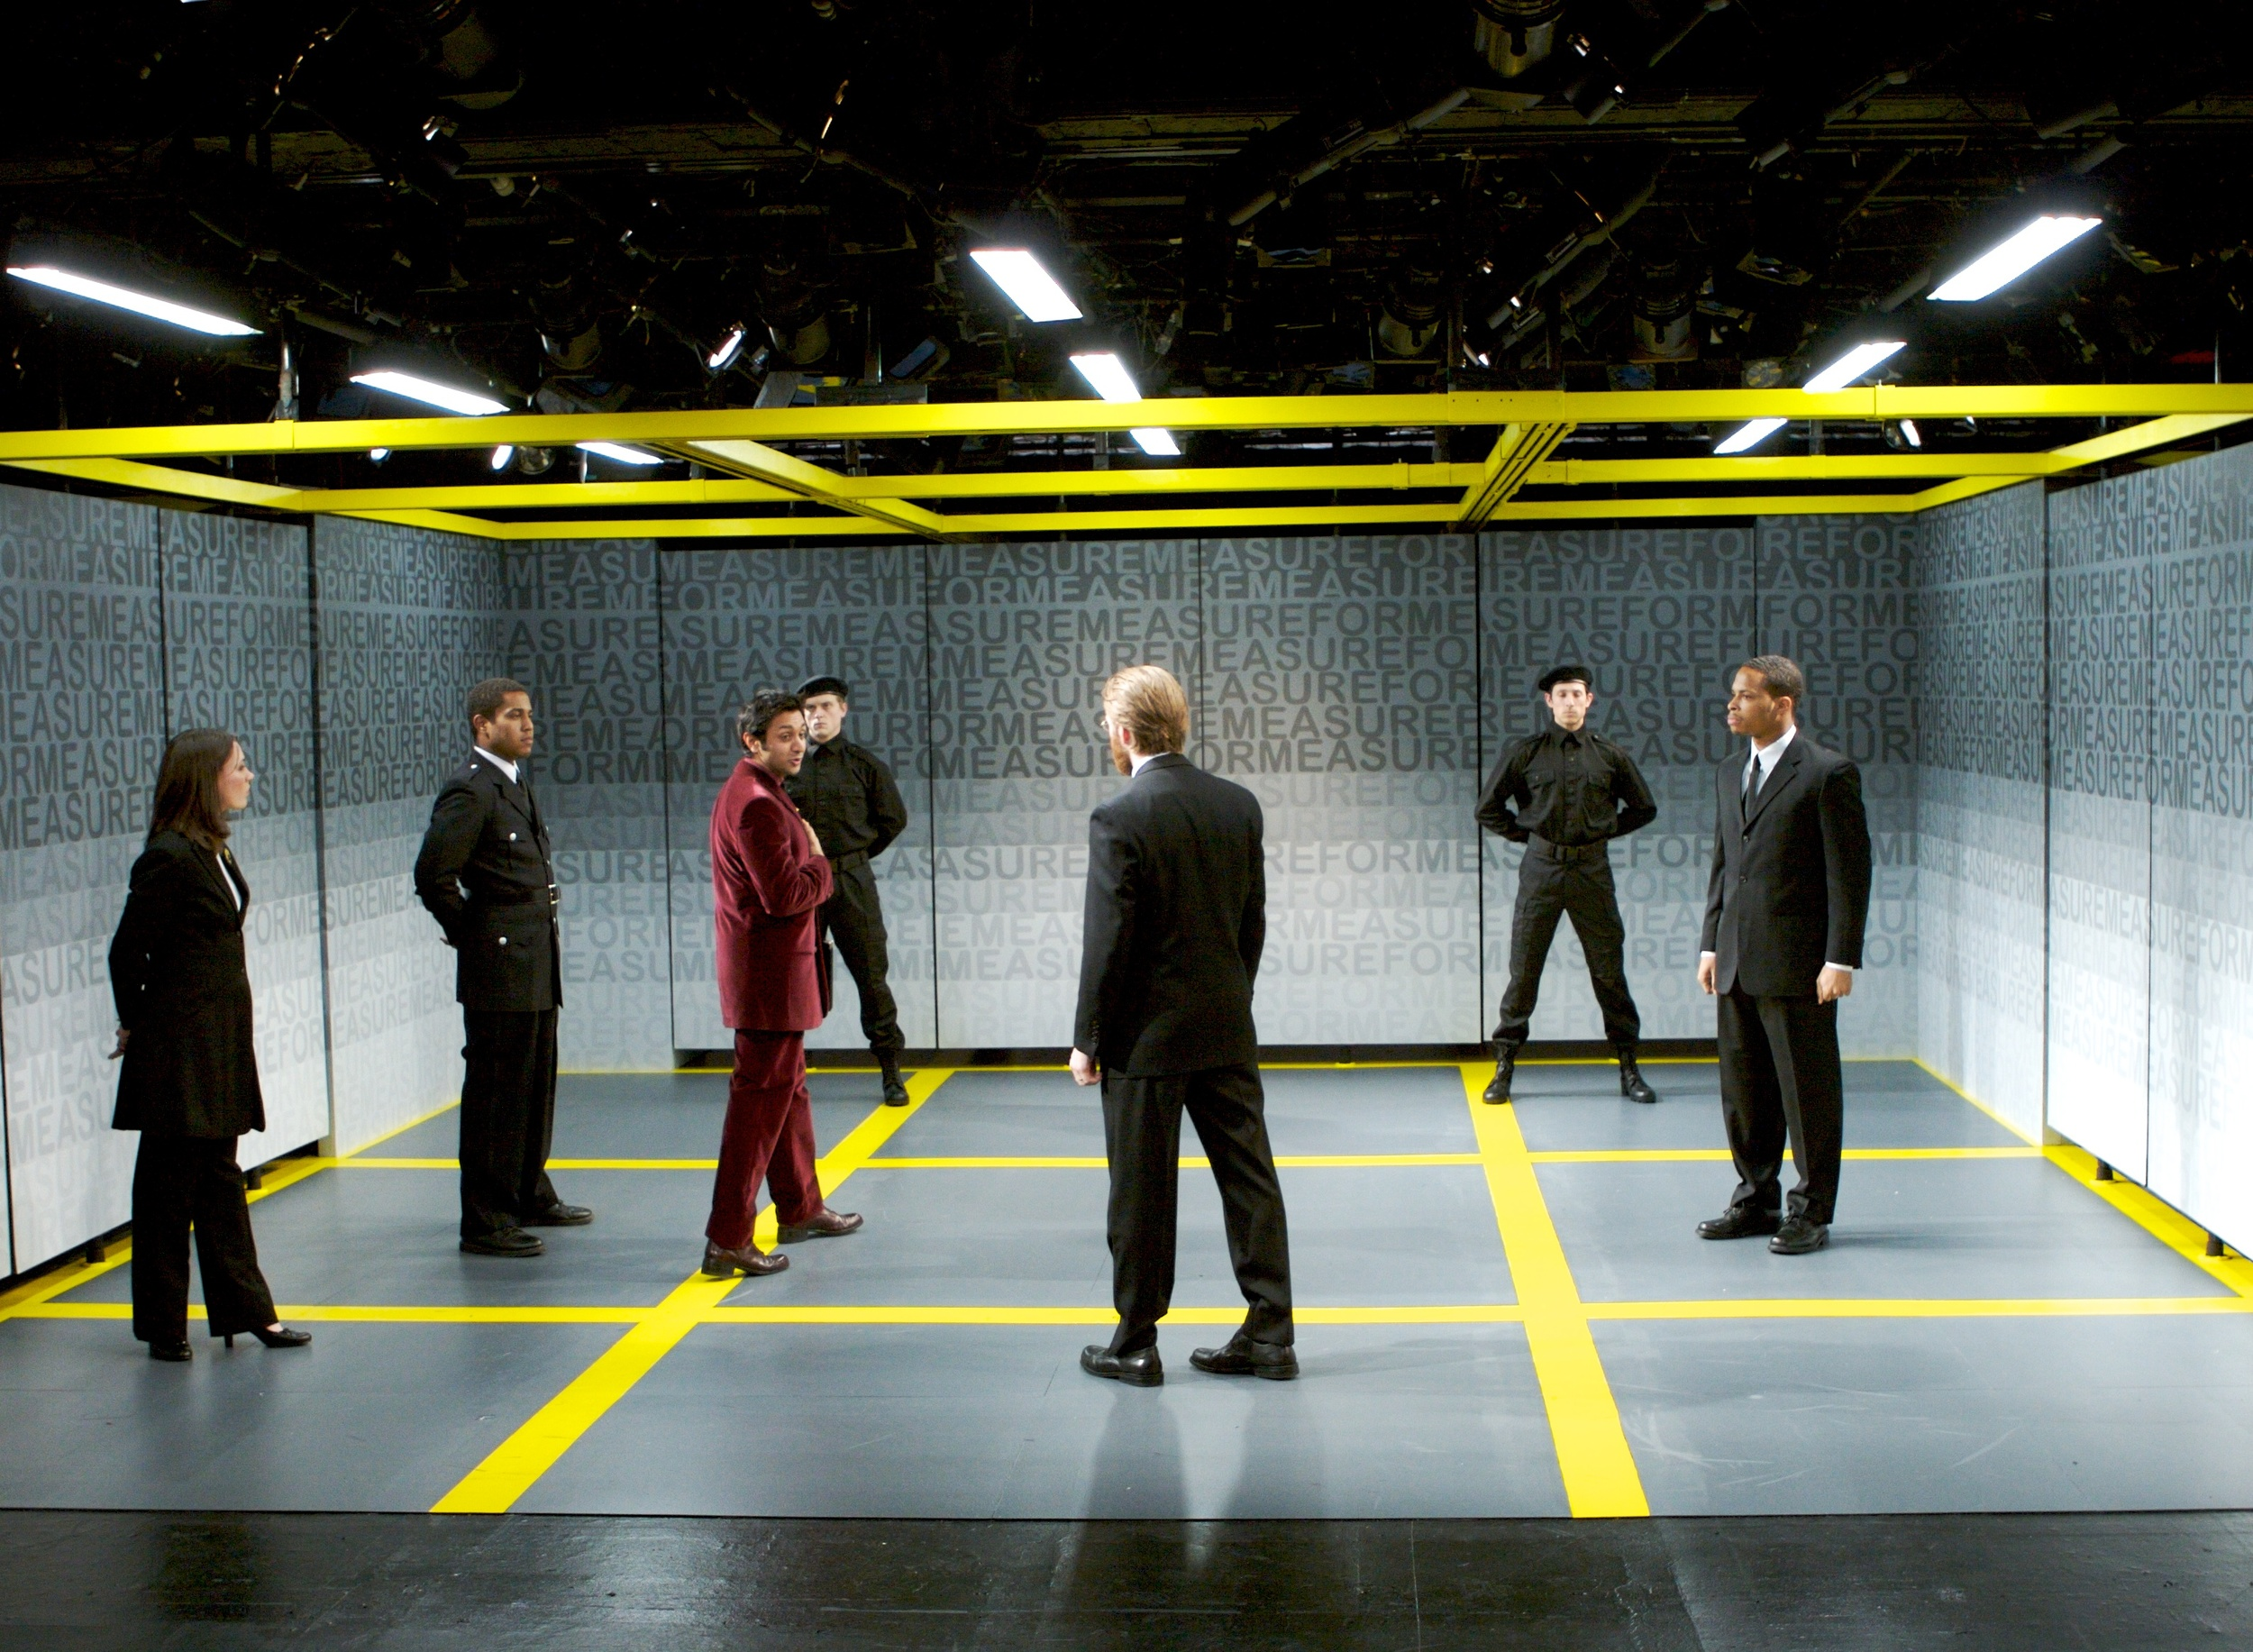 Measure for Measure, directed by Douglas Wager